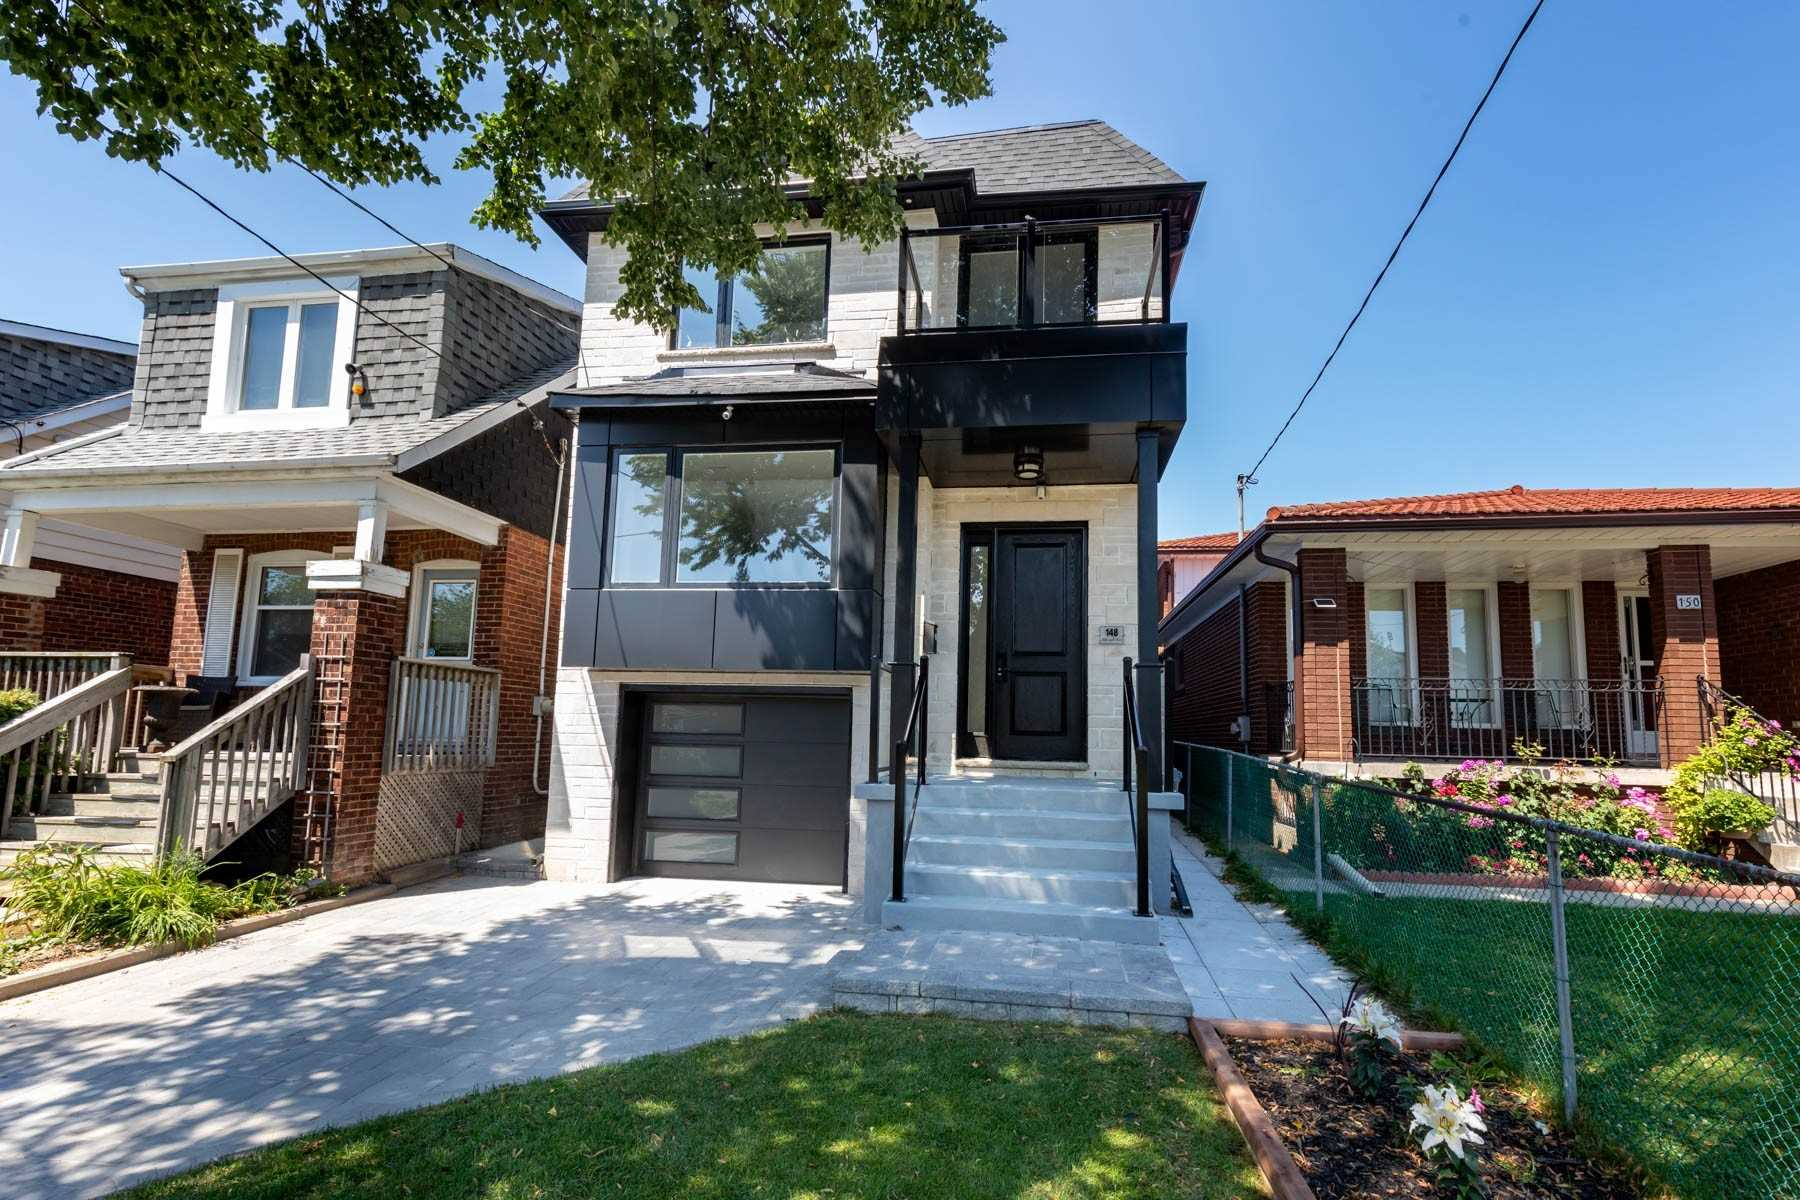 148 Aldwych Ave, Toronto, Ontario M4J 1X6, 4 Bedrooms Bedrooms, 8 Rooms Rooms,5 BathroomsBathrooms,Detached,For Sale,Aldwych,E4861453